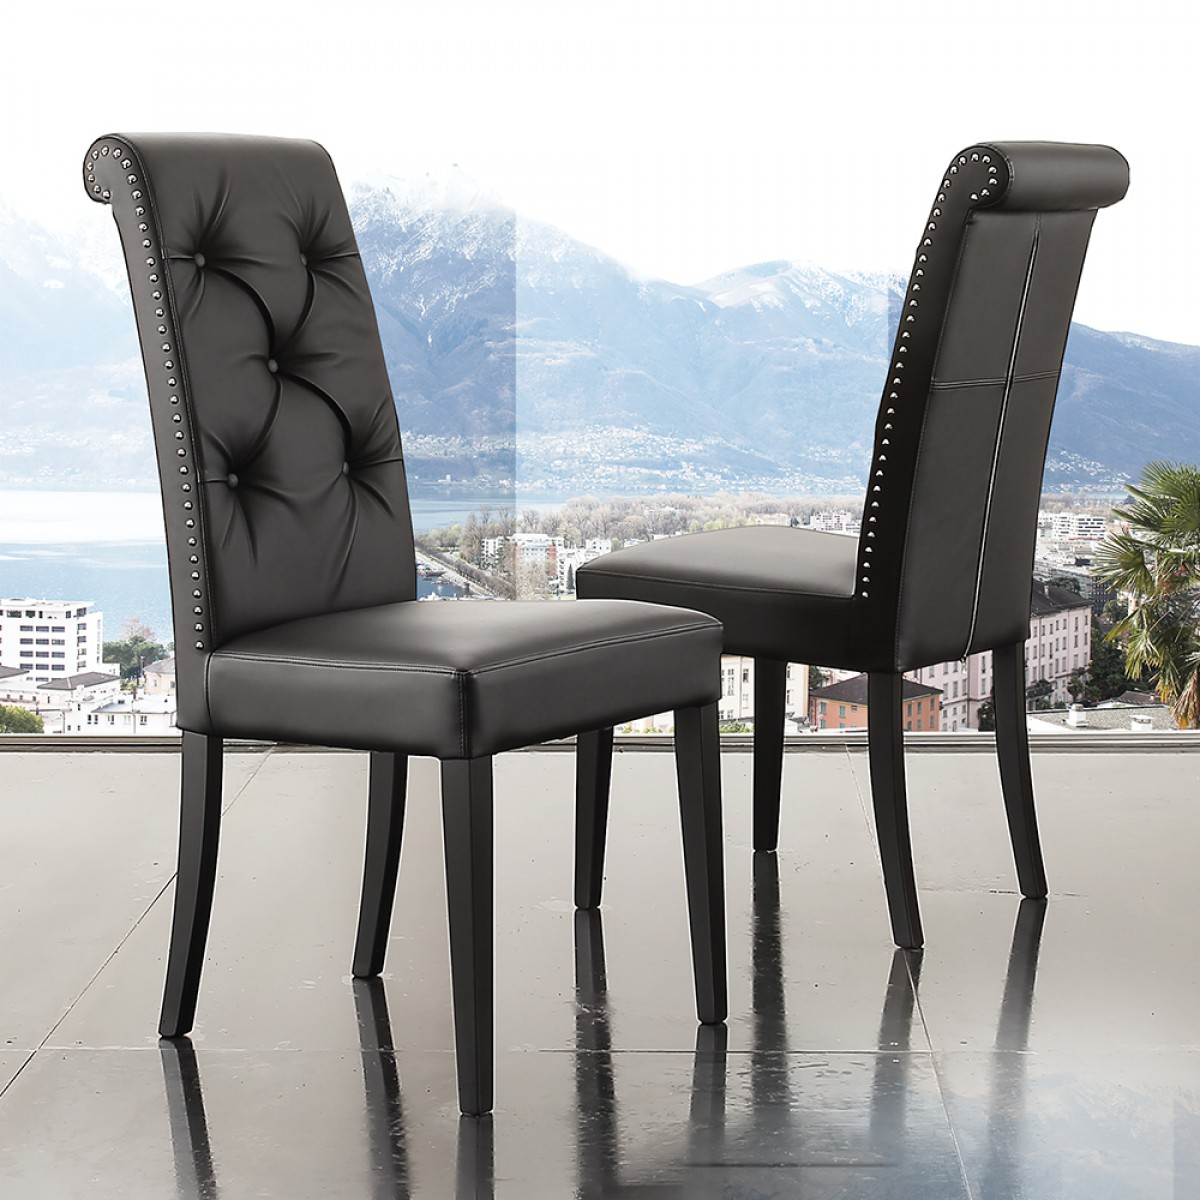 Sedia design da salotto in ecopelle nero schienale alto con borchie